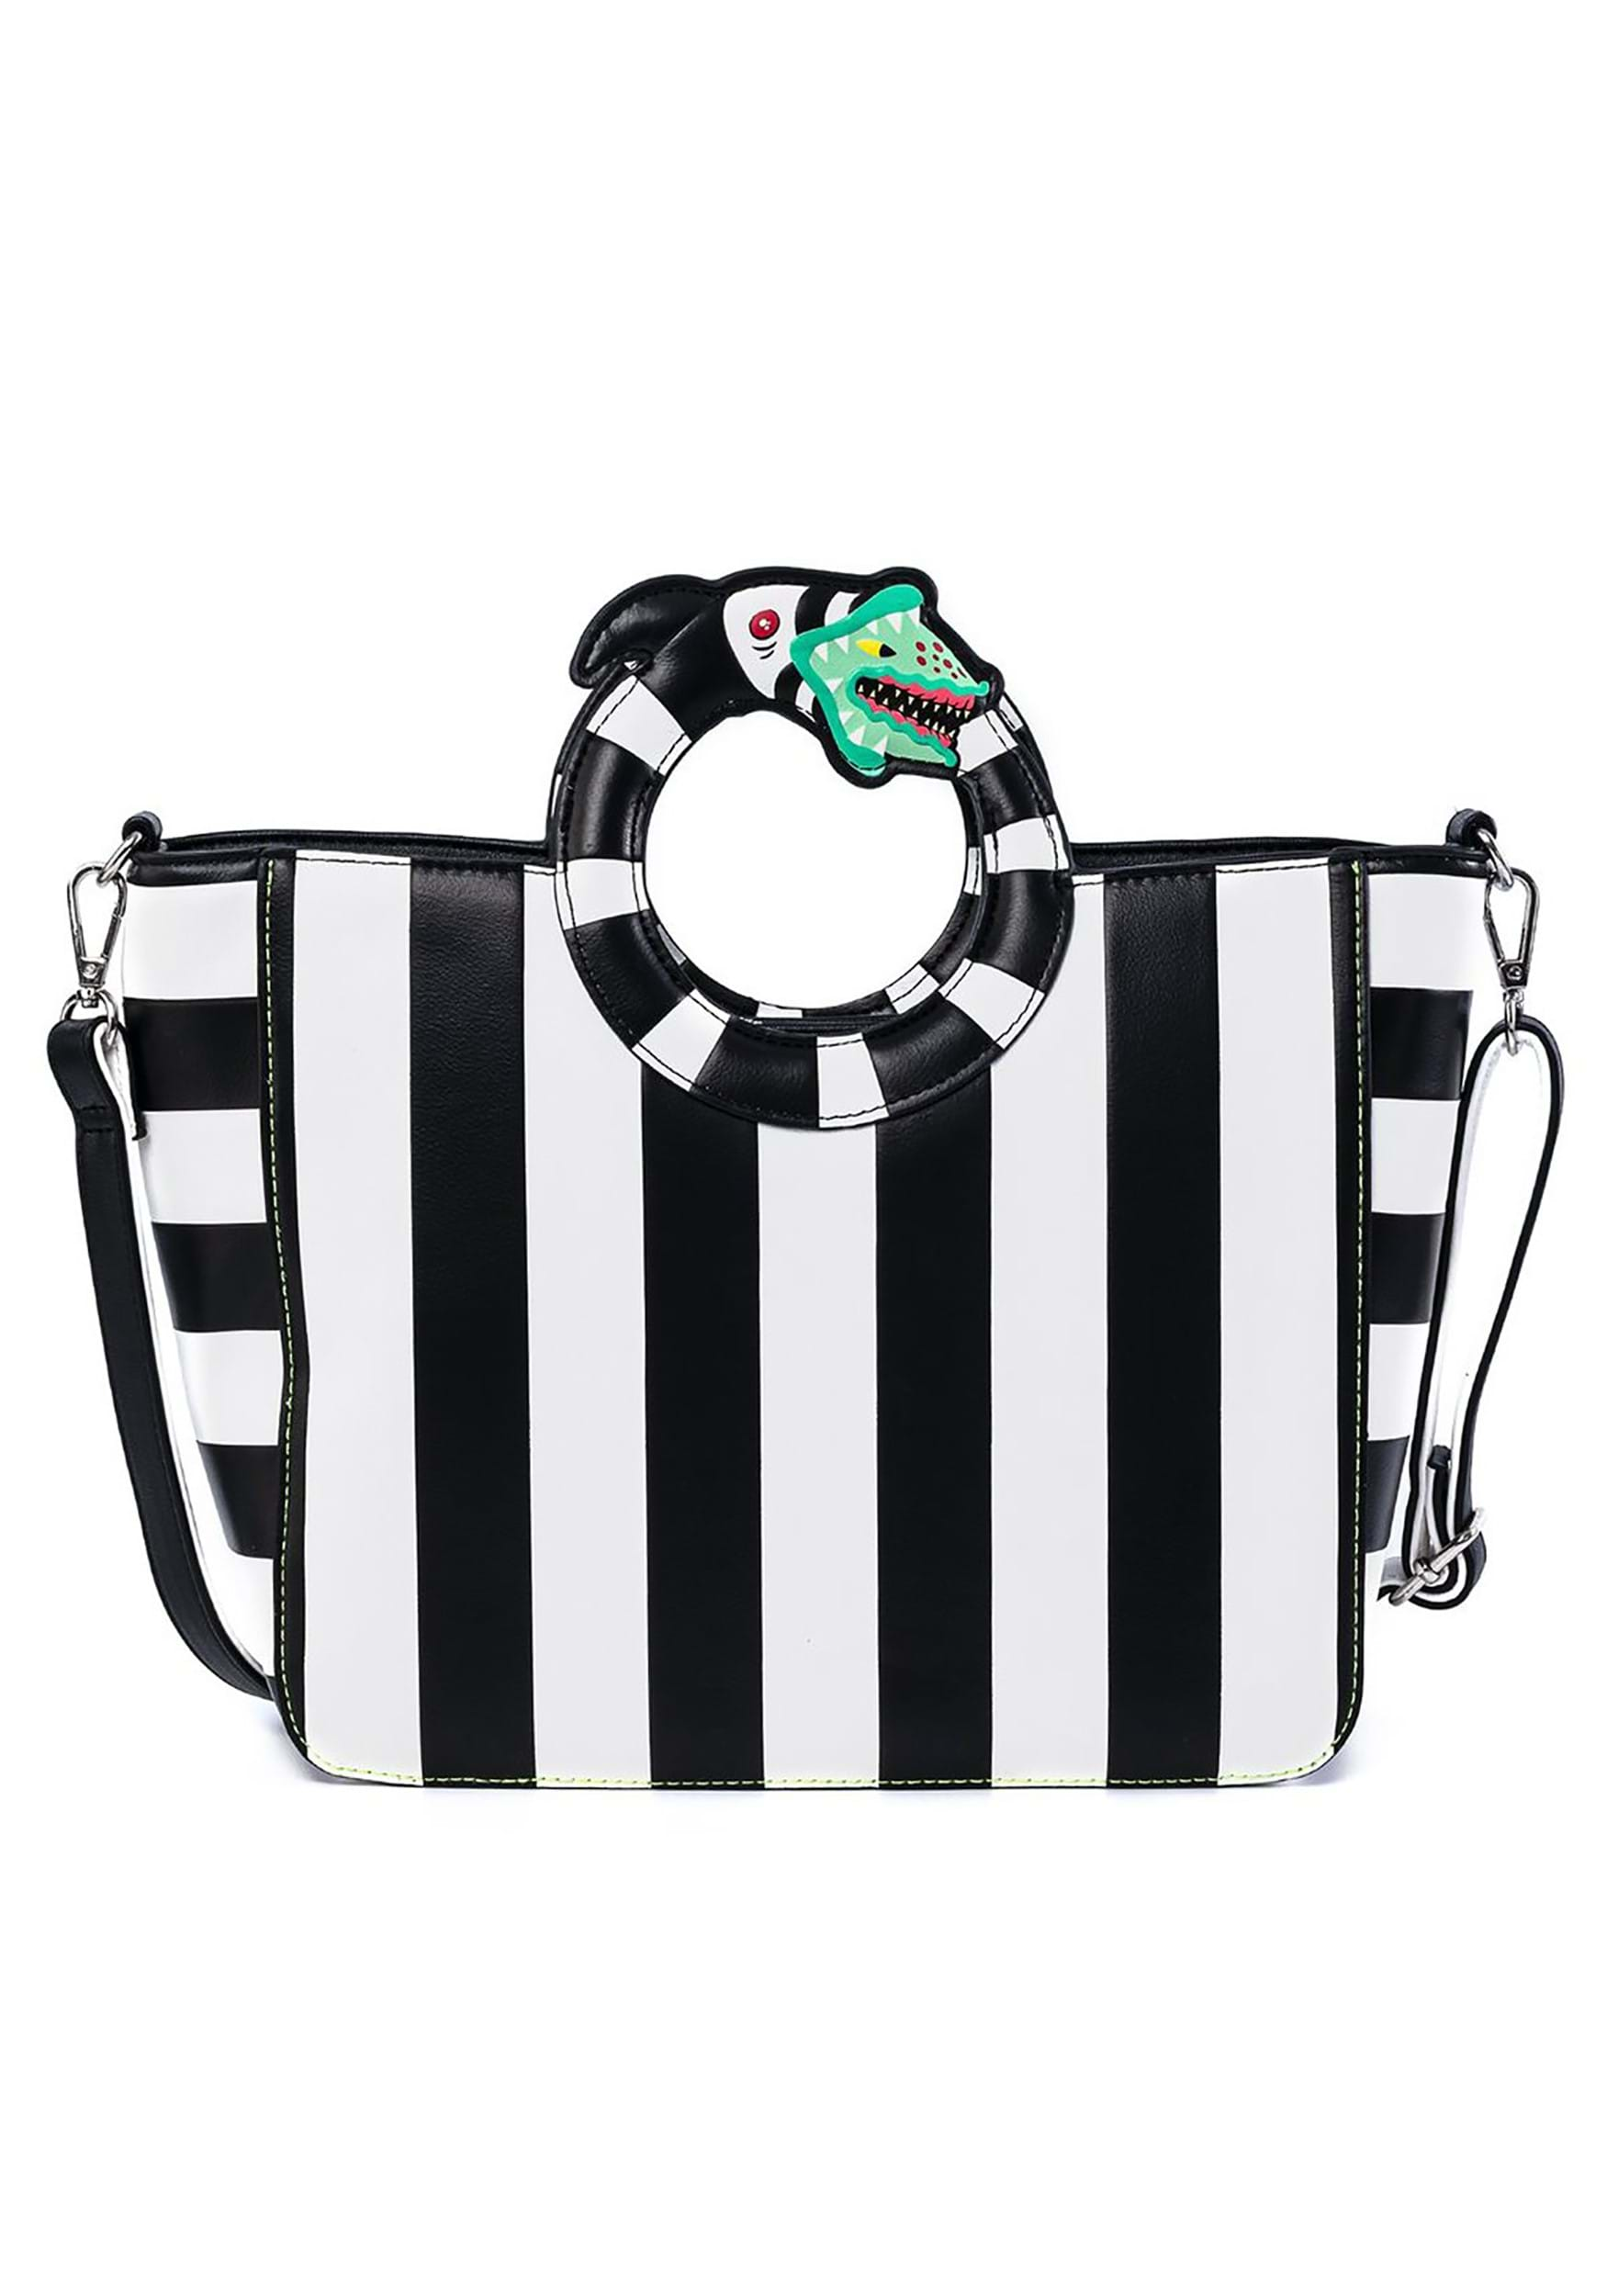 Beetlejuice Sandworm Loungefly Handle Crossbody Bag